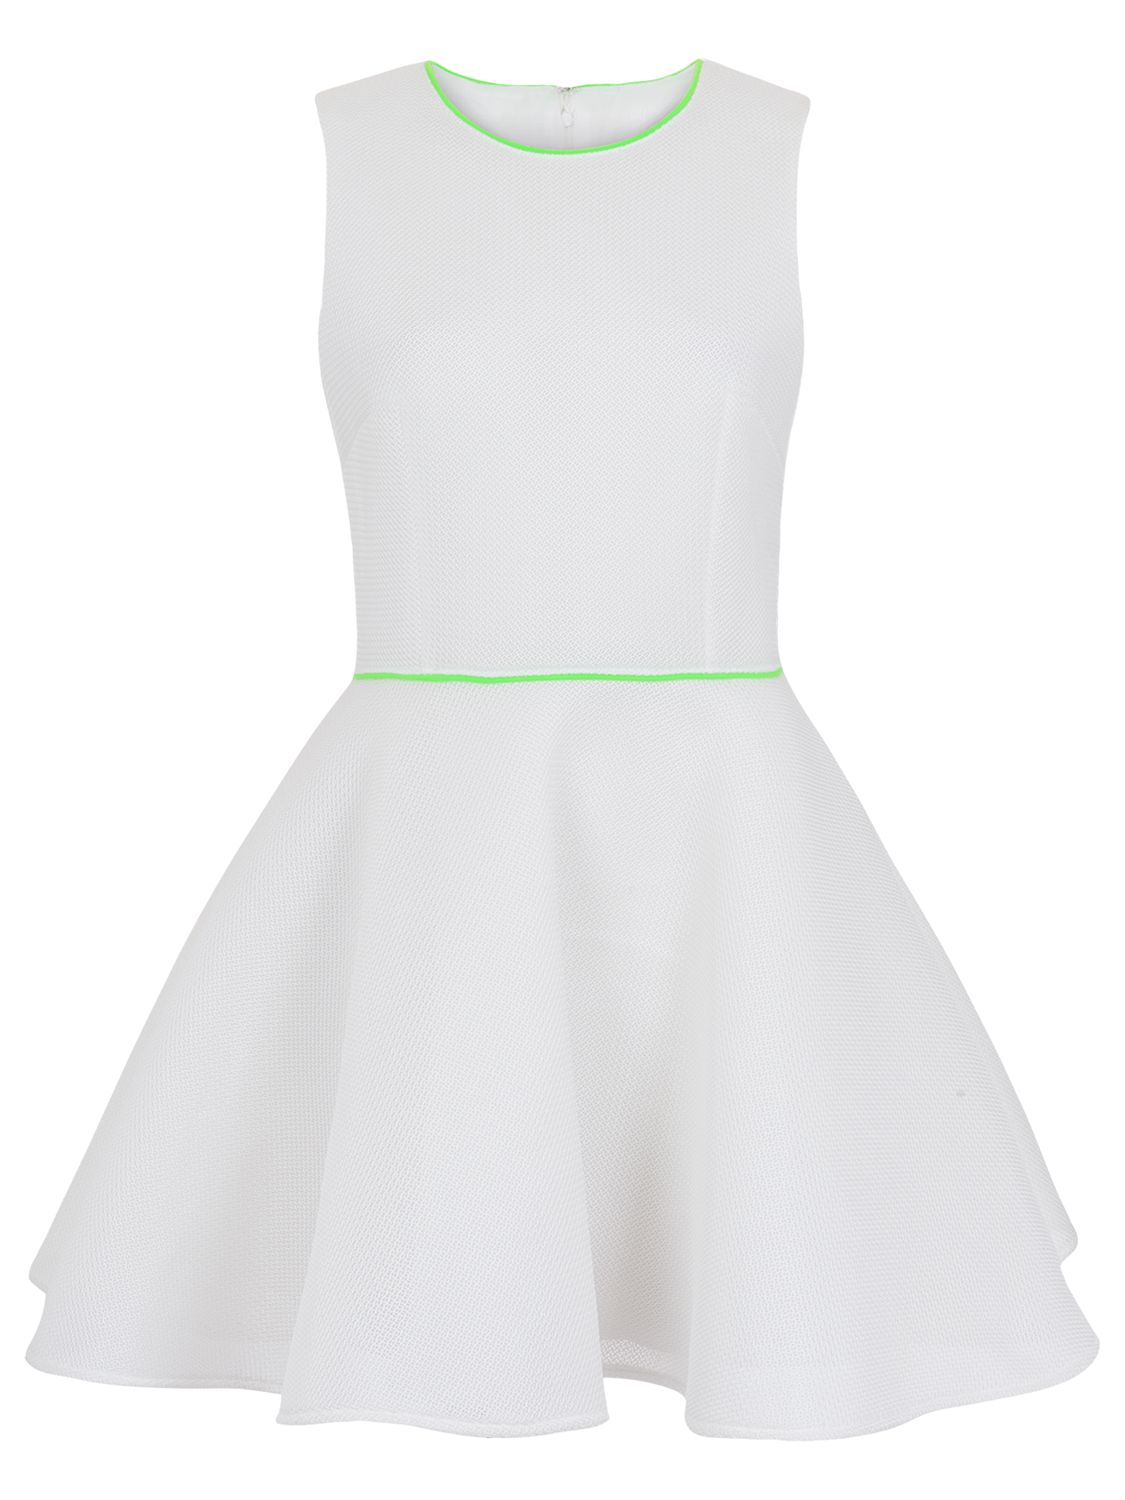 french connection honey mesh sleeveless dress white / fluro green, french, connection, honey, mesh, sleeveless, dress, white, fluro, green, french connection, 16|12|8|6|14|10, women, womens dresses, 1911167